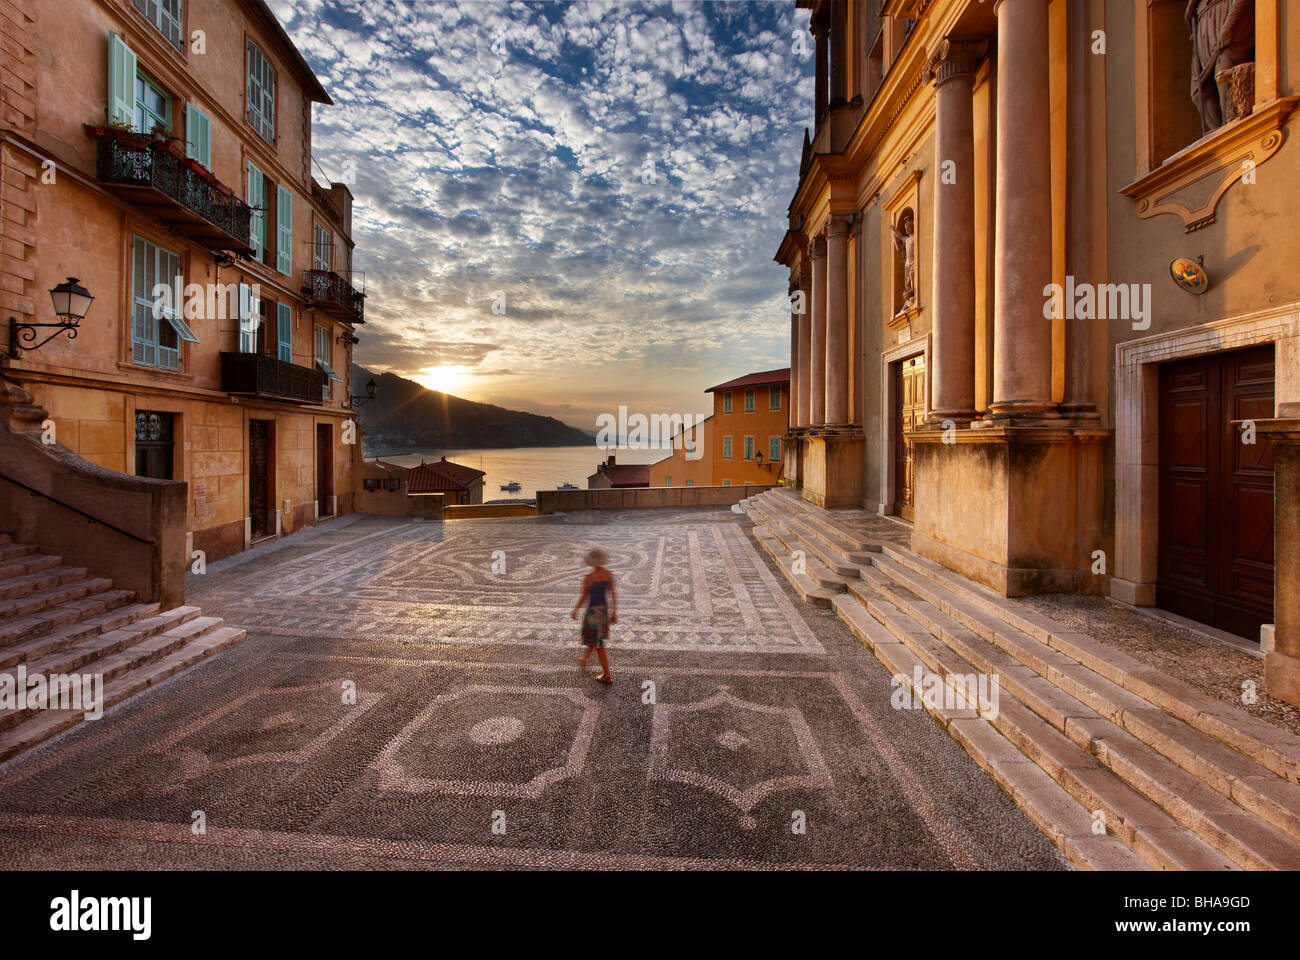 a woman walking through Parvis St Michel at dawn, the Old Town, Menton, Cote d'Azur, Alpes Maritime, Provence, - Stock Image